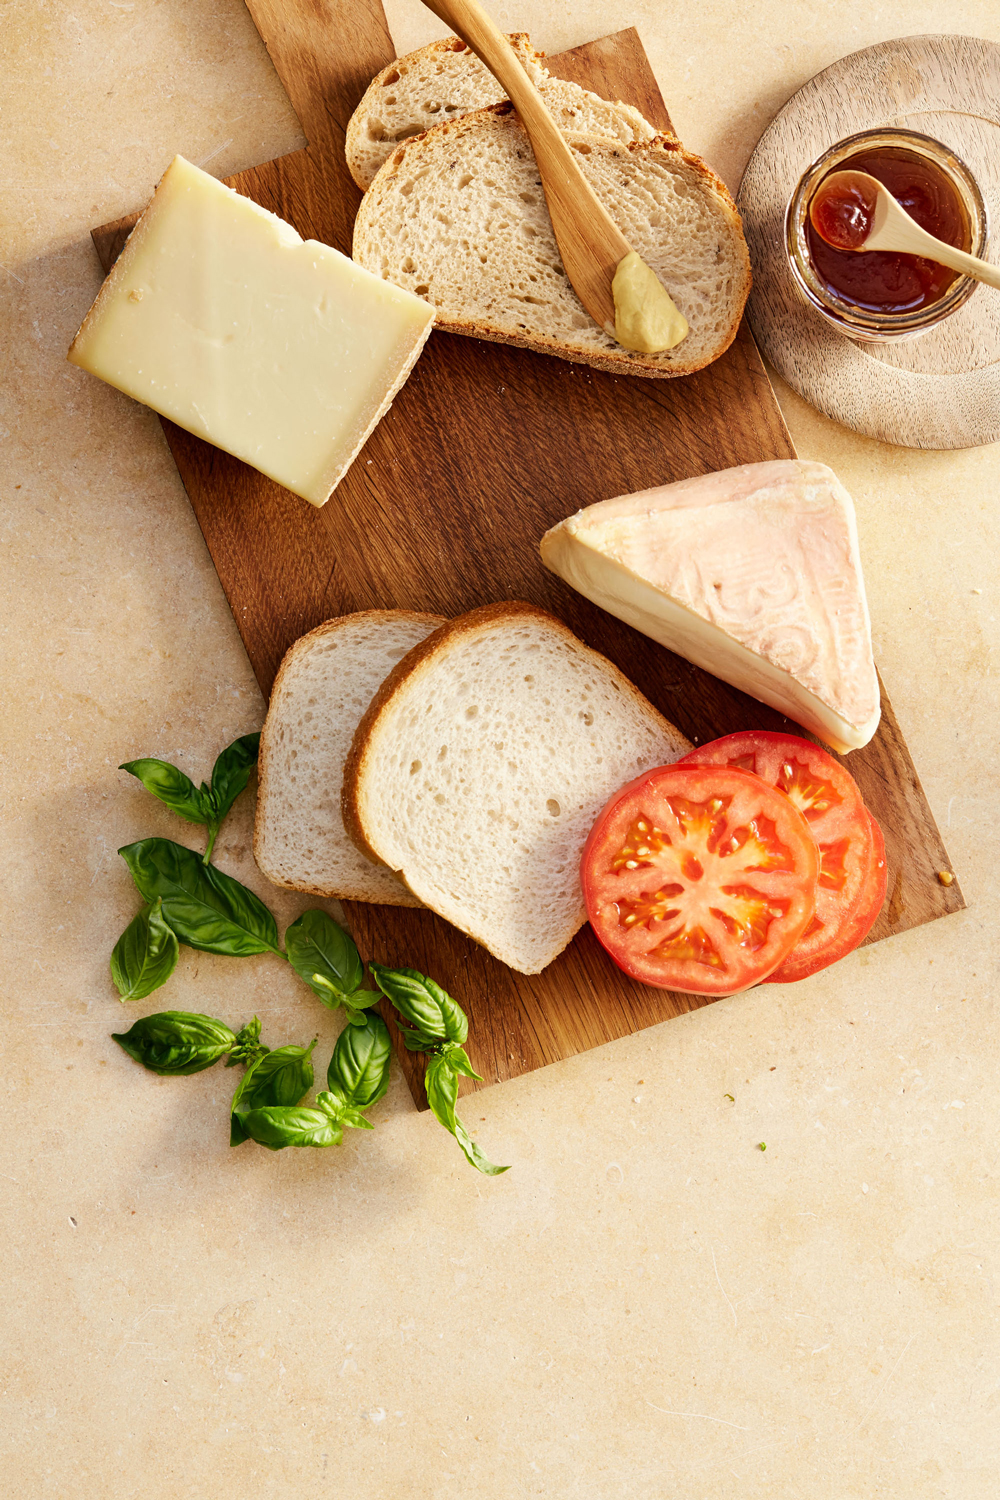 bread butter cheese and tomatoes on cutting board